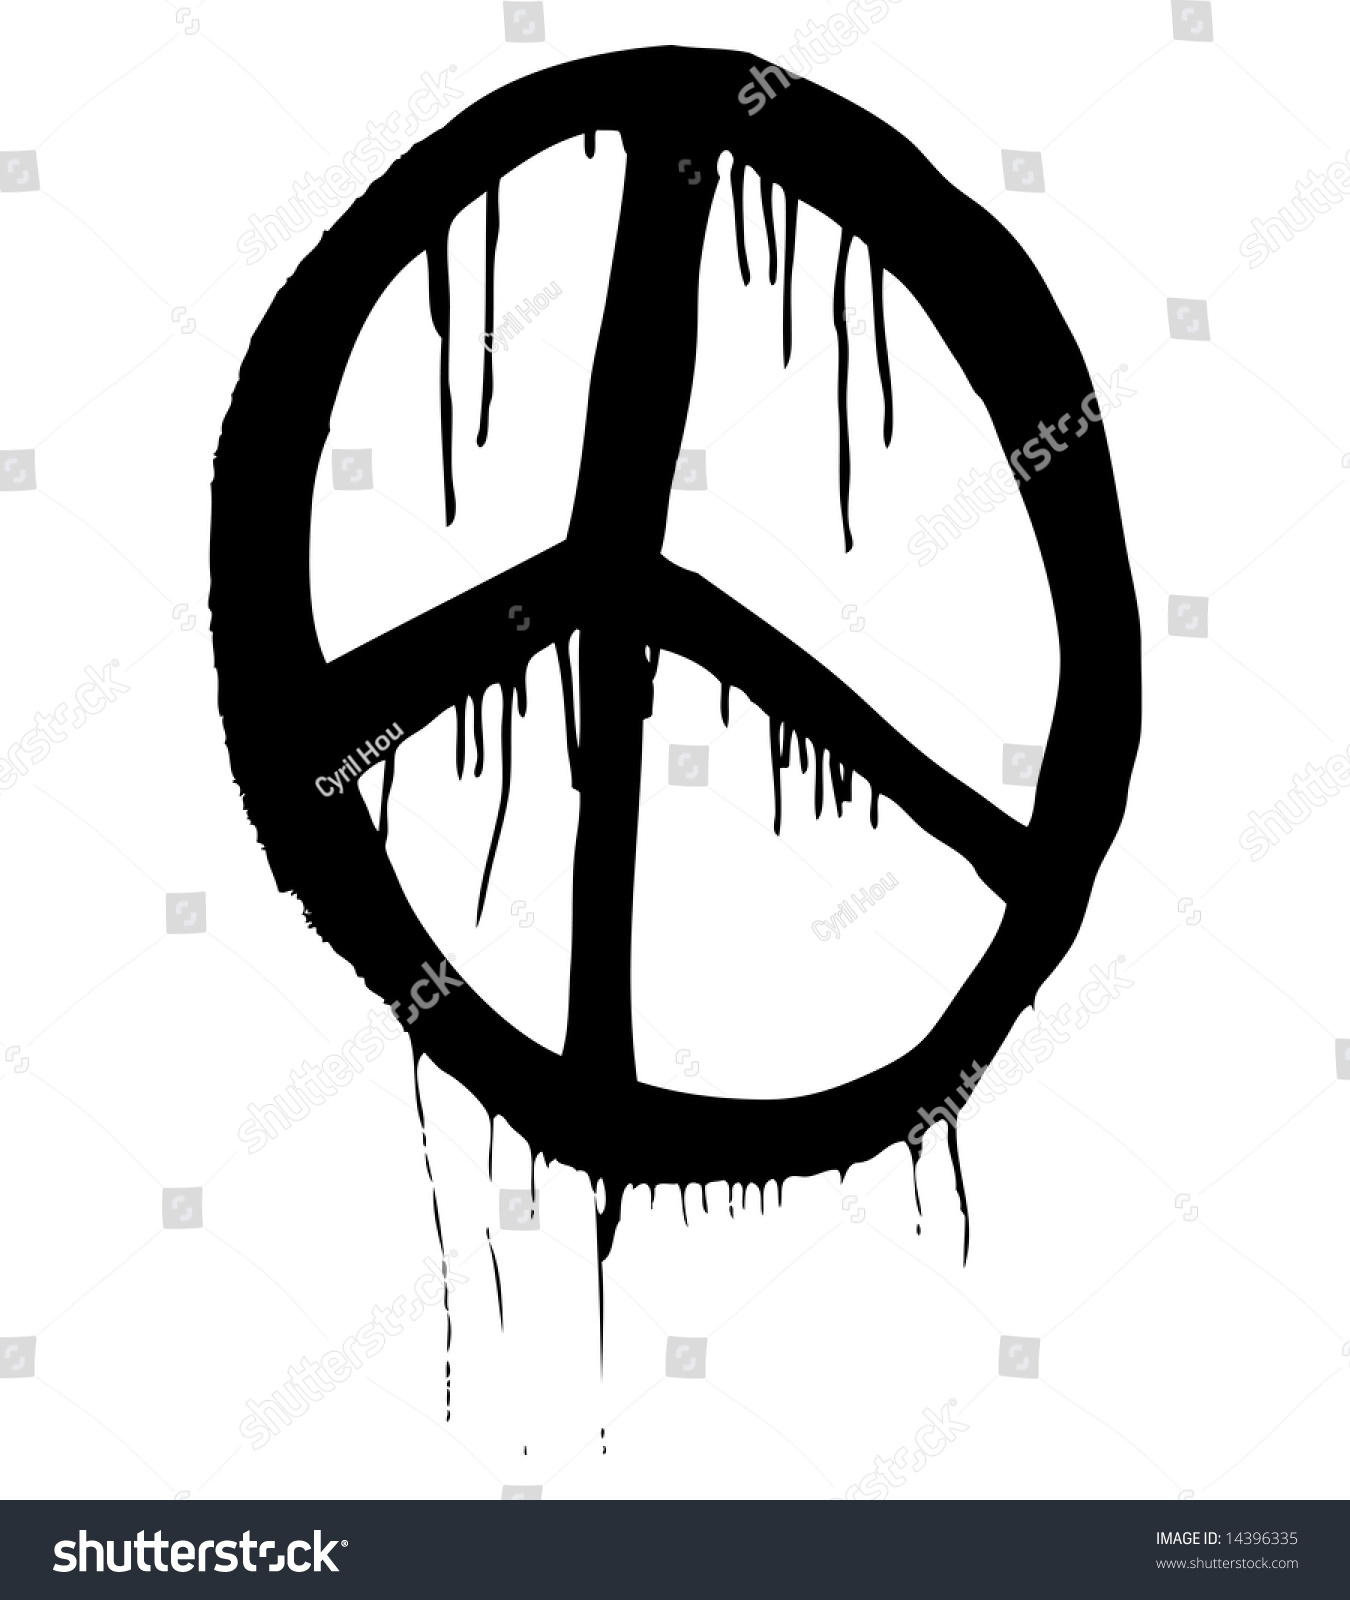 Grungy Illustration Peace Symbol Stock Illustration 14396335